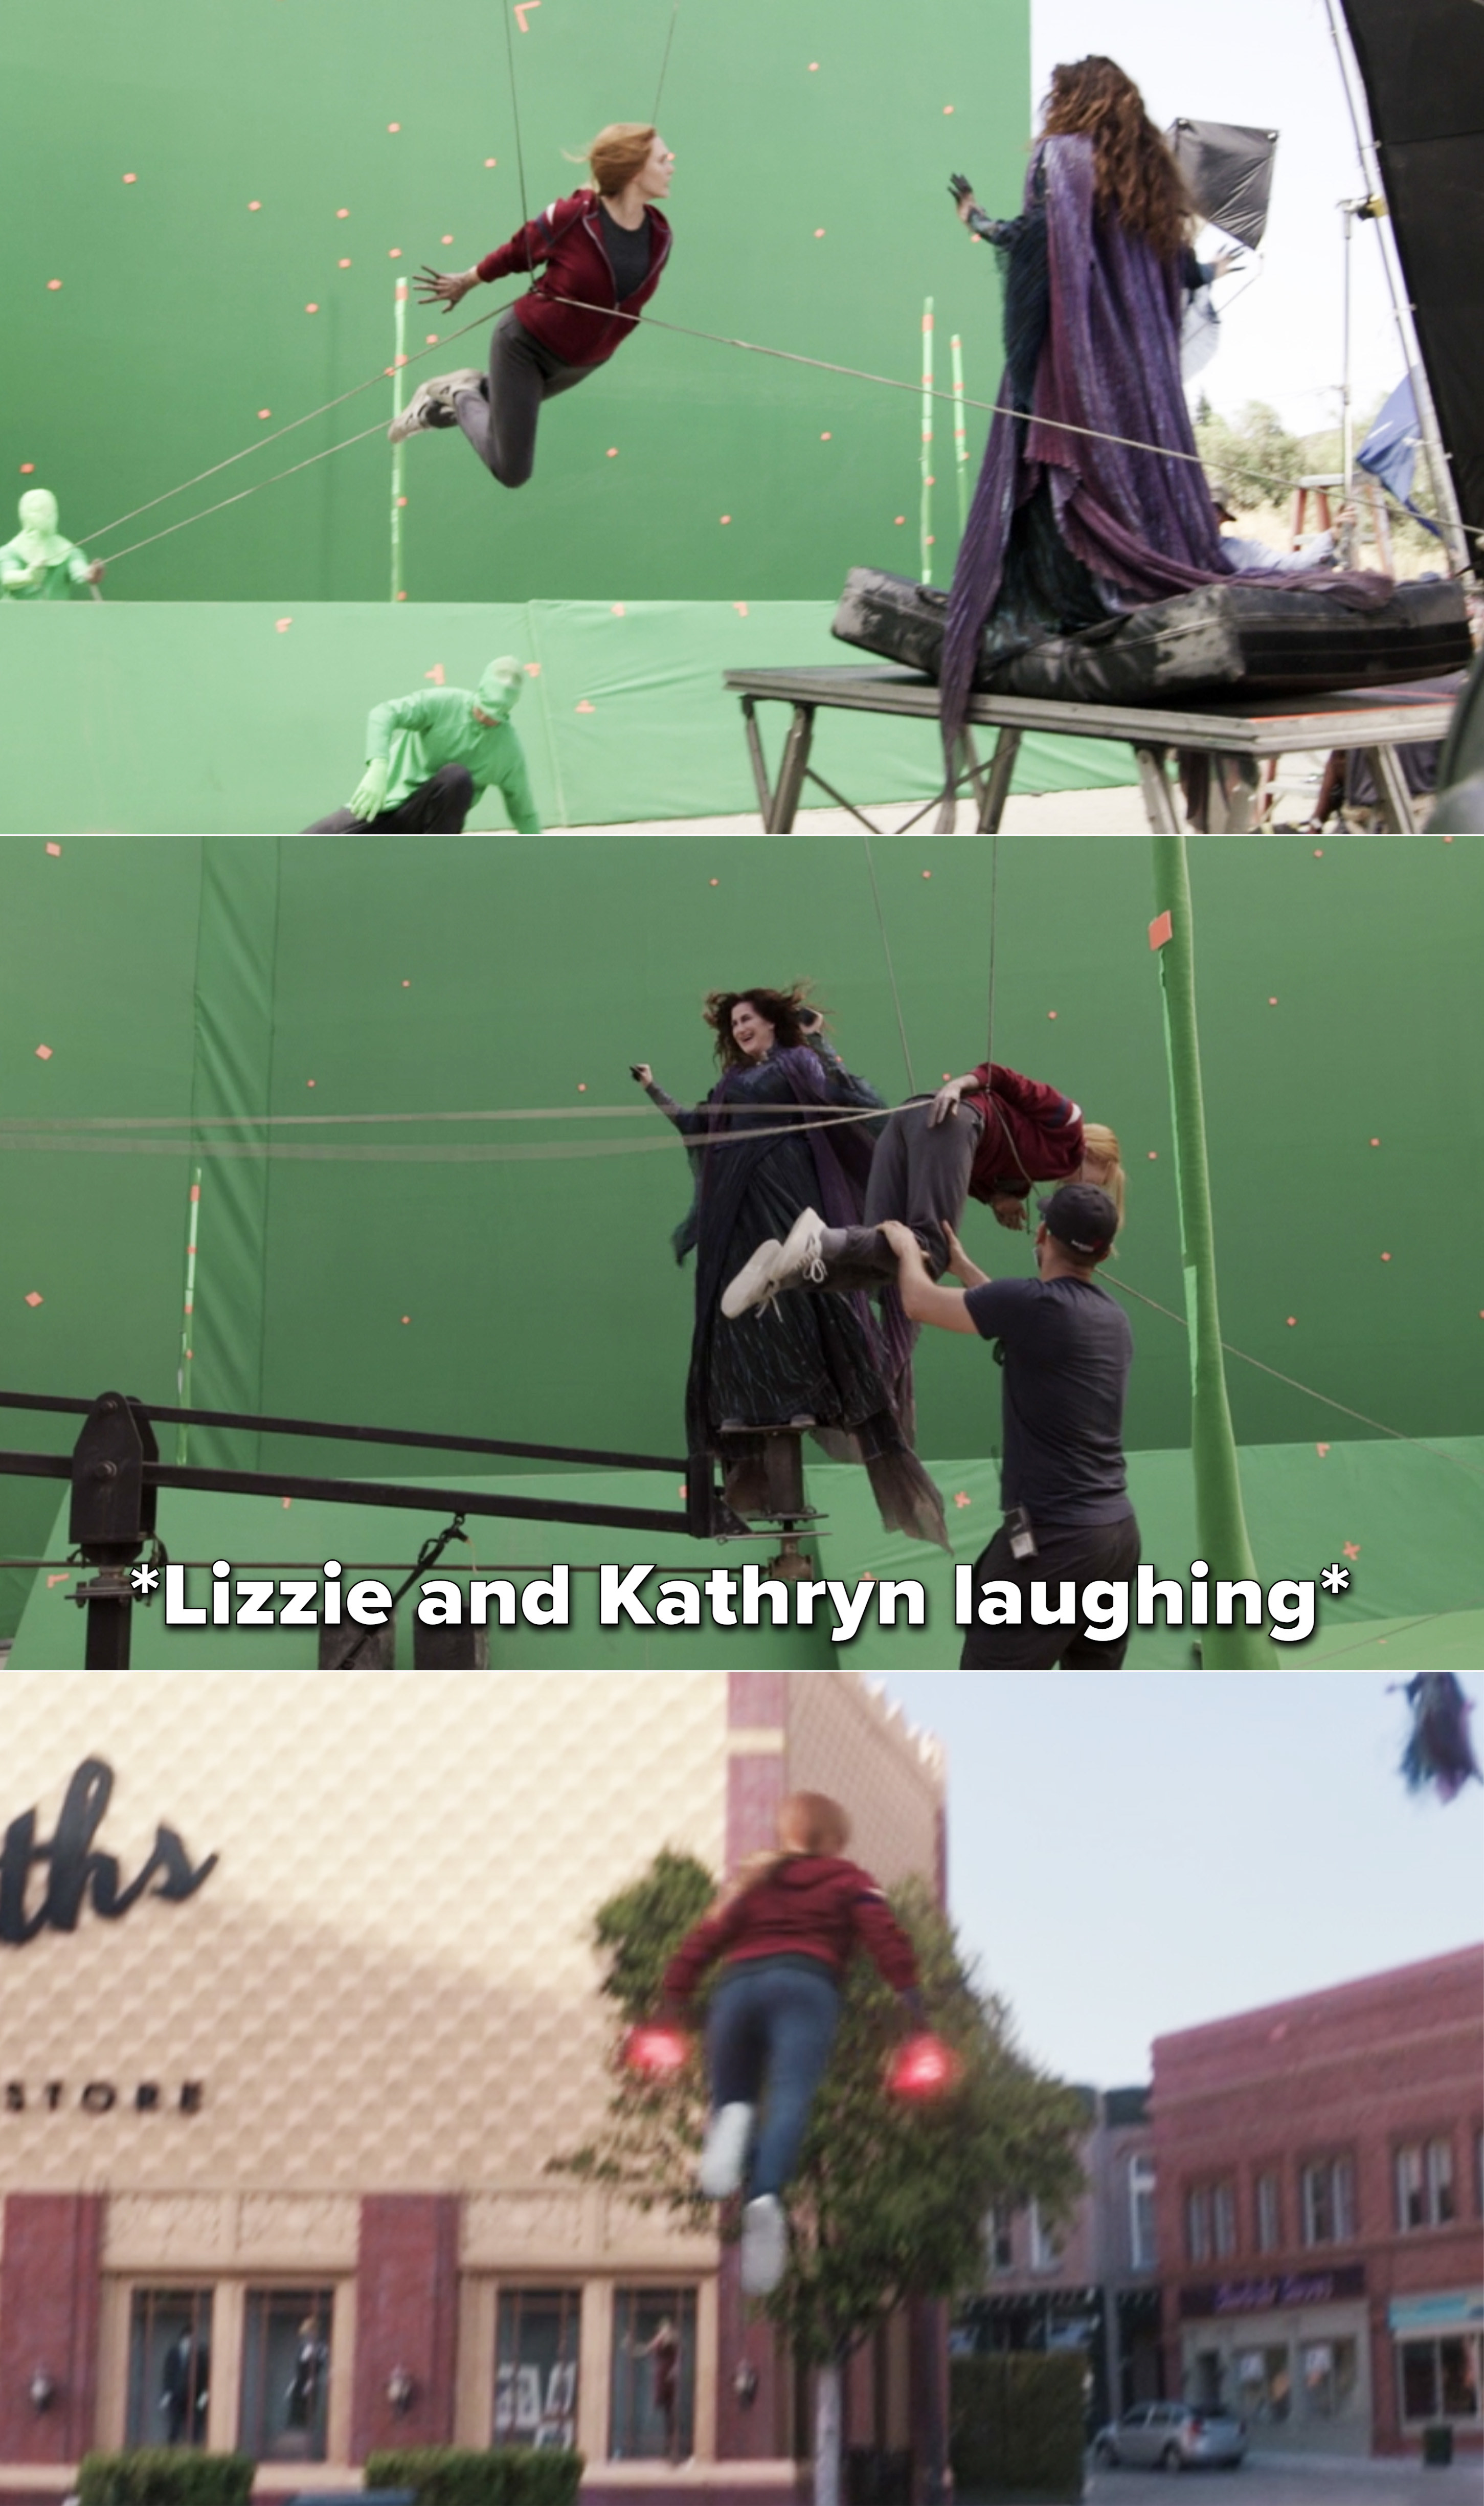 Elizabeth Olsen and Kathryn Hahn laughing while floating in the air on a green screen